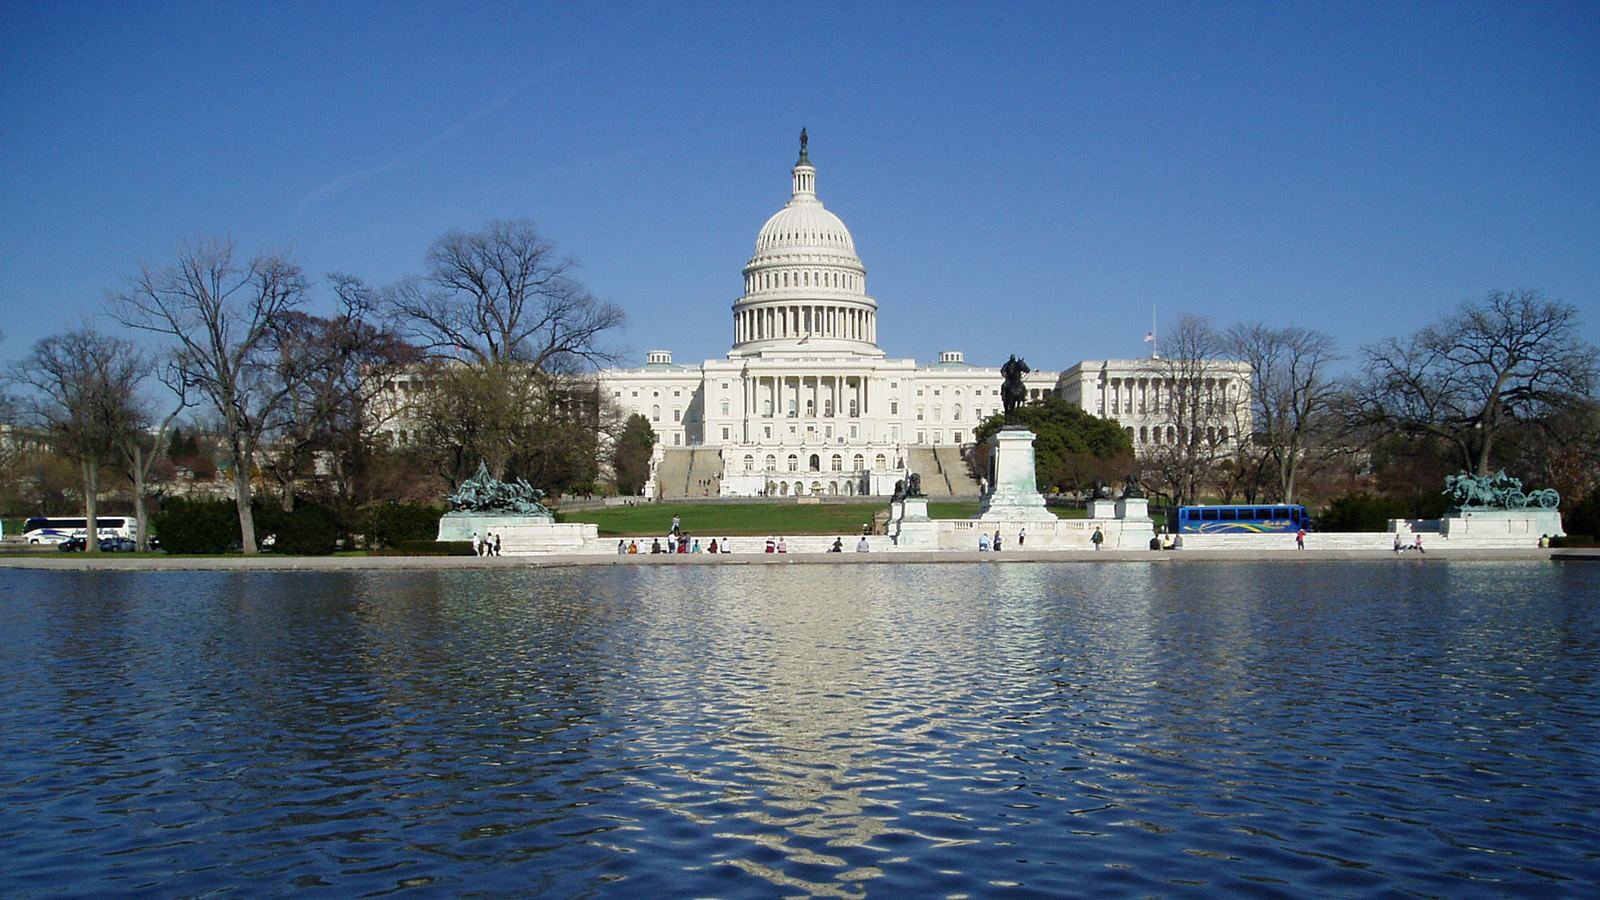 <h4>YOUR ENVIRONMENTAL WATCHDOG</h4><h5>Our Washington, D.C., team is watching the White House, Congress and regulatory agencies for any attempt to roll back protections for our water, our public lands, our coasts or our climate.</h5><em>Dokaspar, CC-BY-SA-3.0</em>